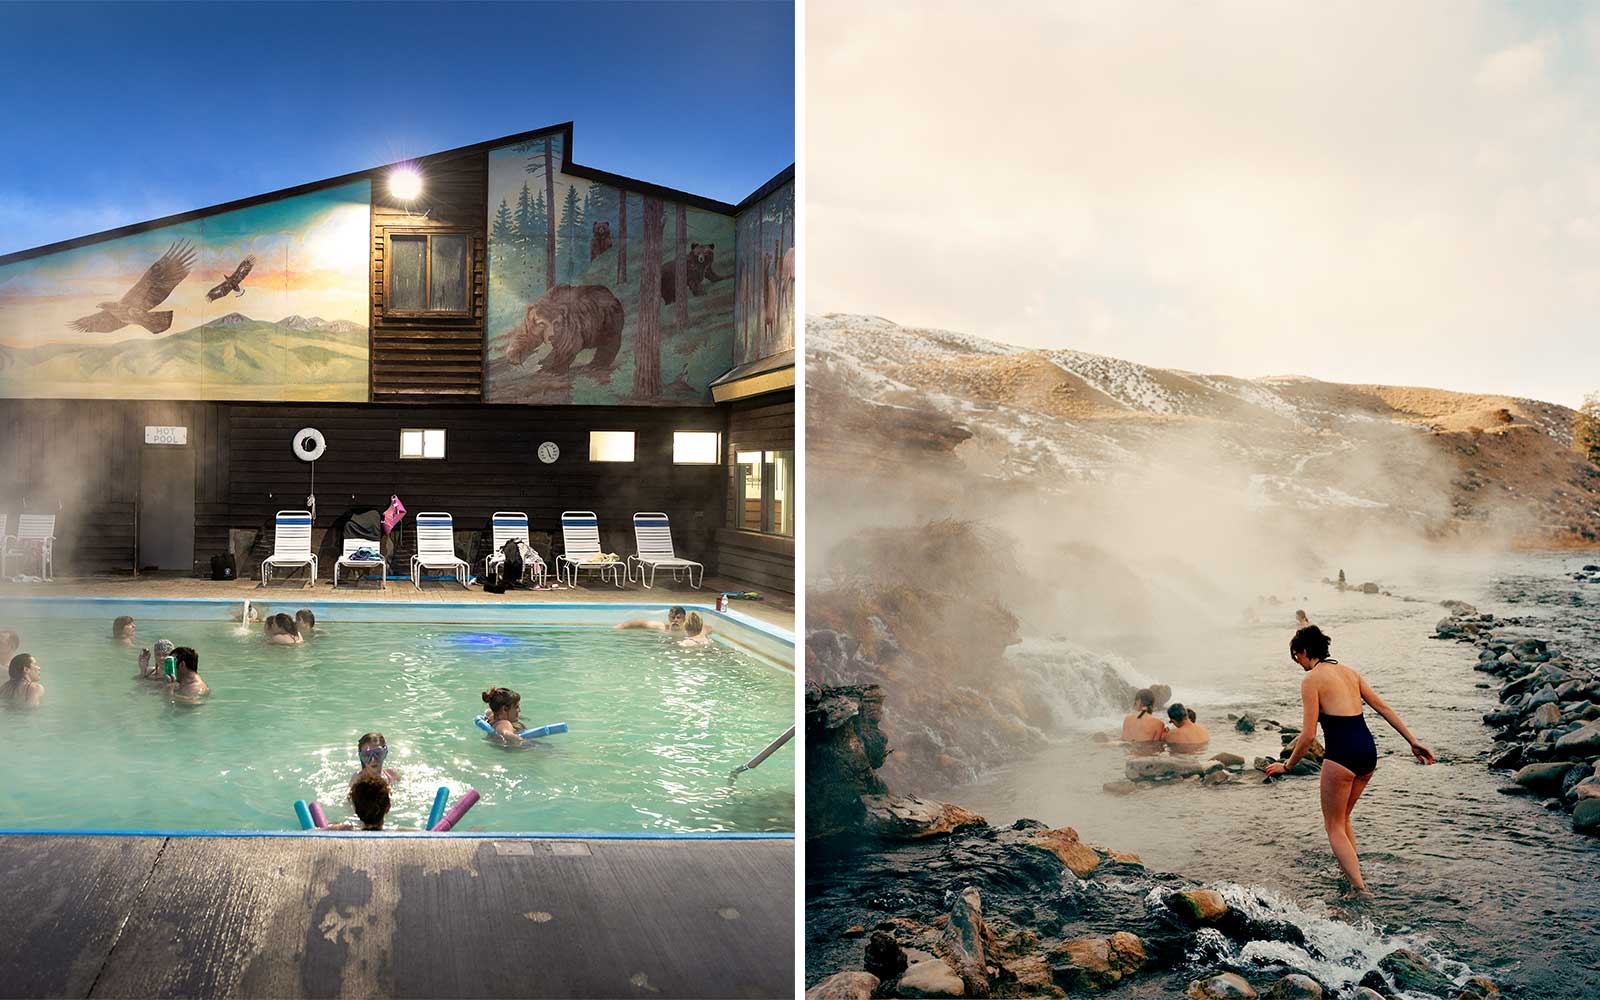 The Best Hot Springs in the American West